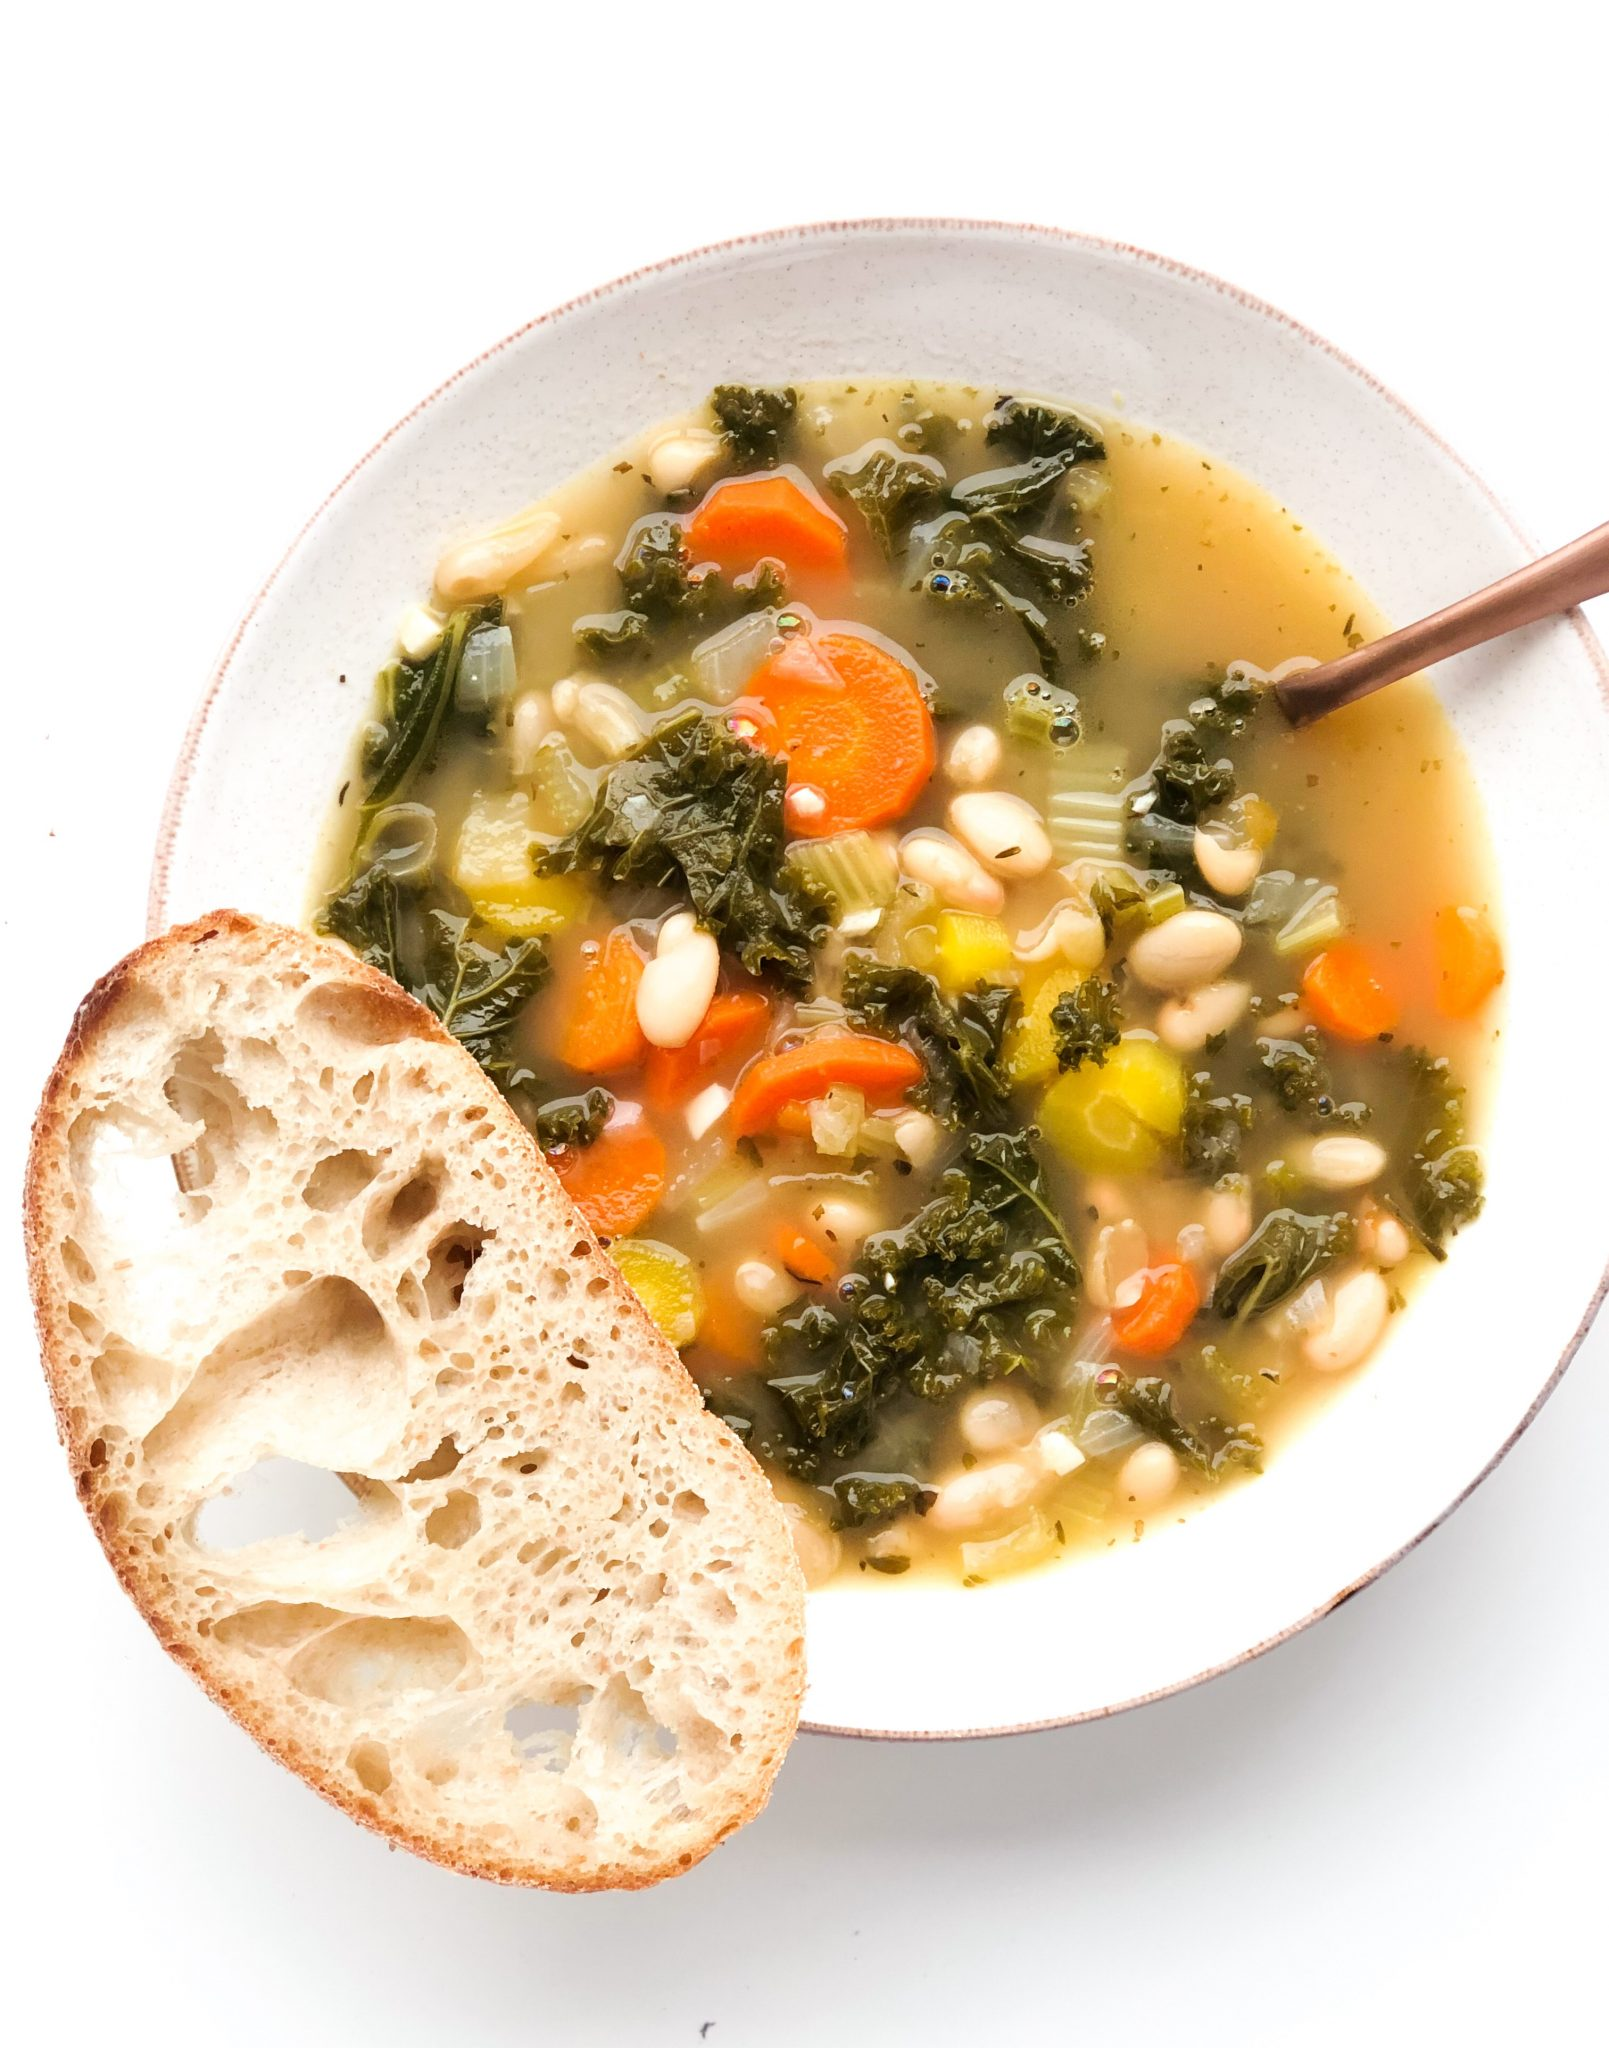 Kale Soup wit Bacon and Parmesan Cheese